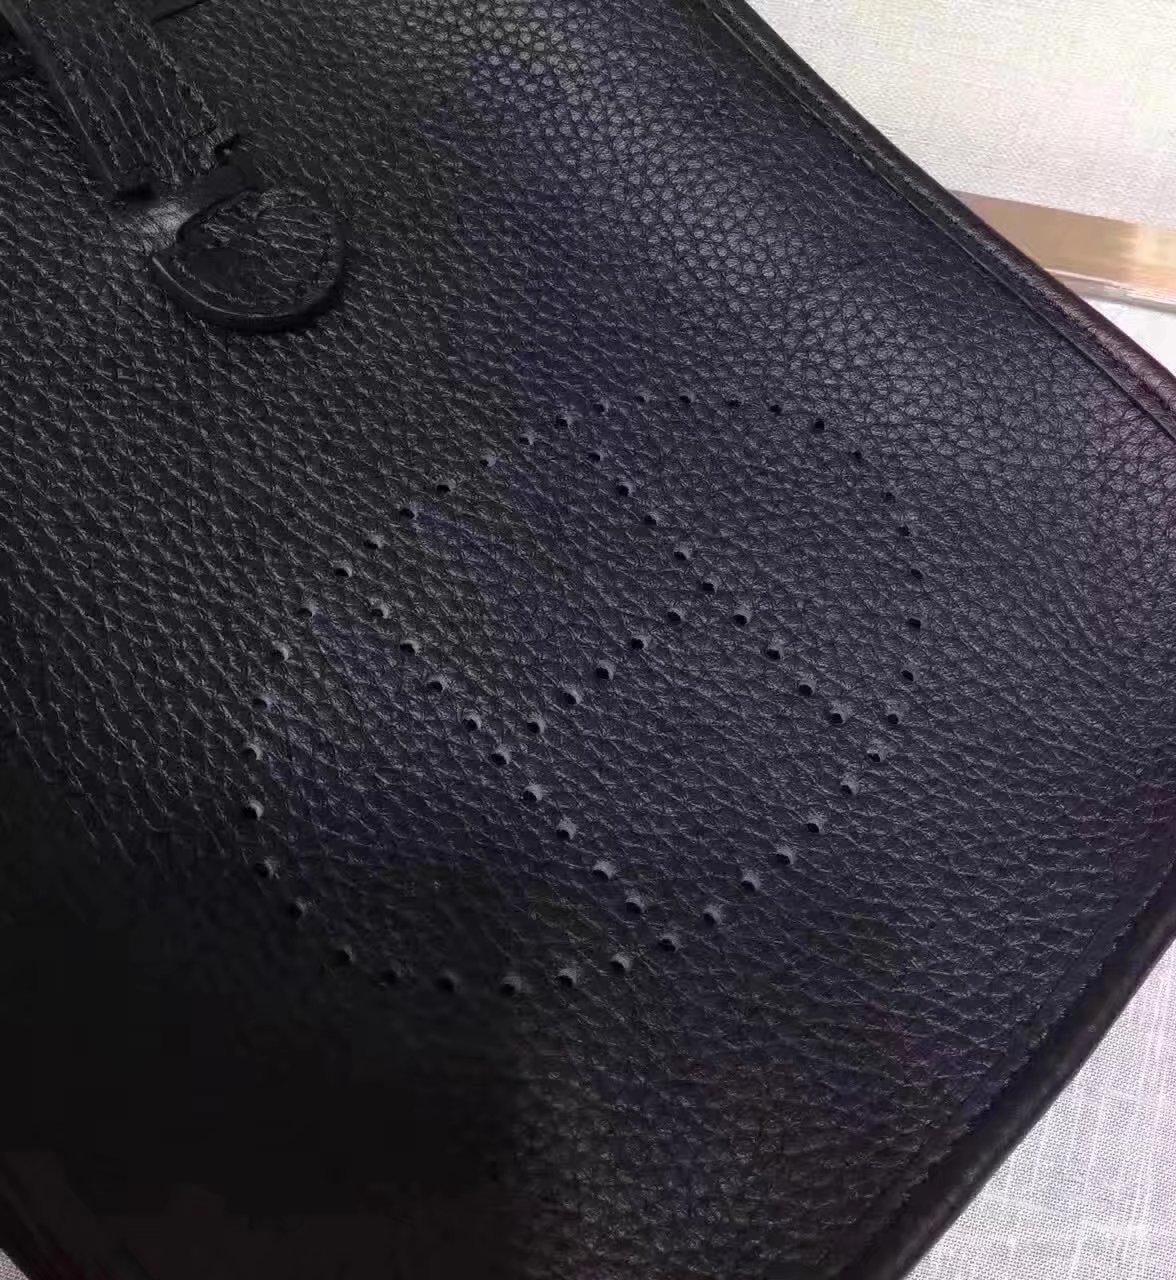 Hermes Evelyne Mini Leather Bag Black